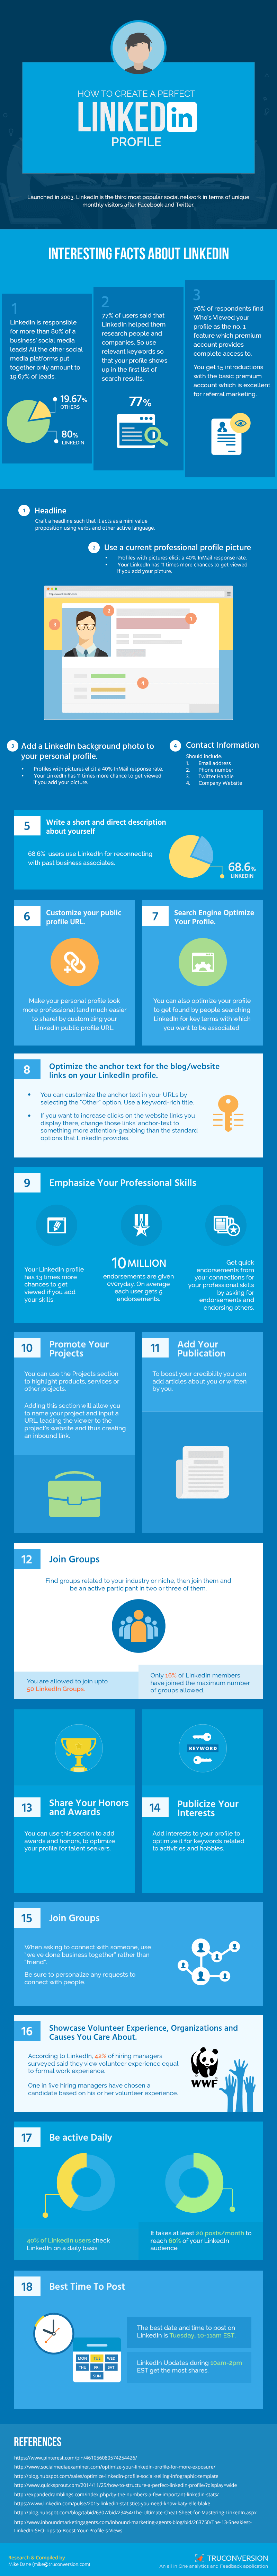 Optimise your LinkedIn Profile Infographic